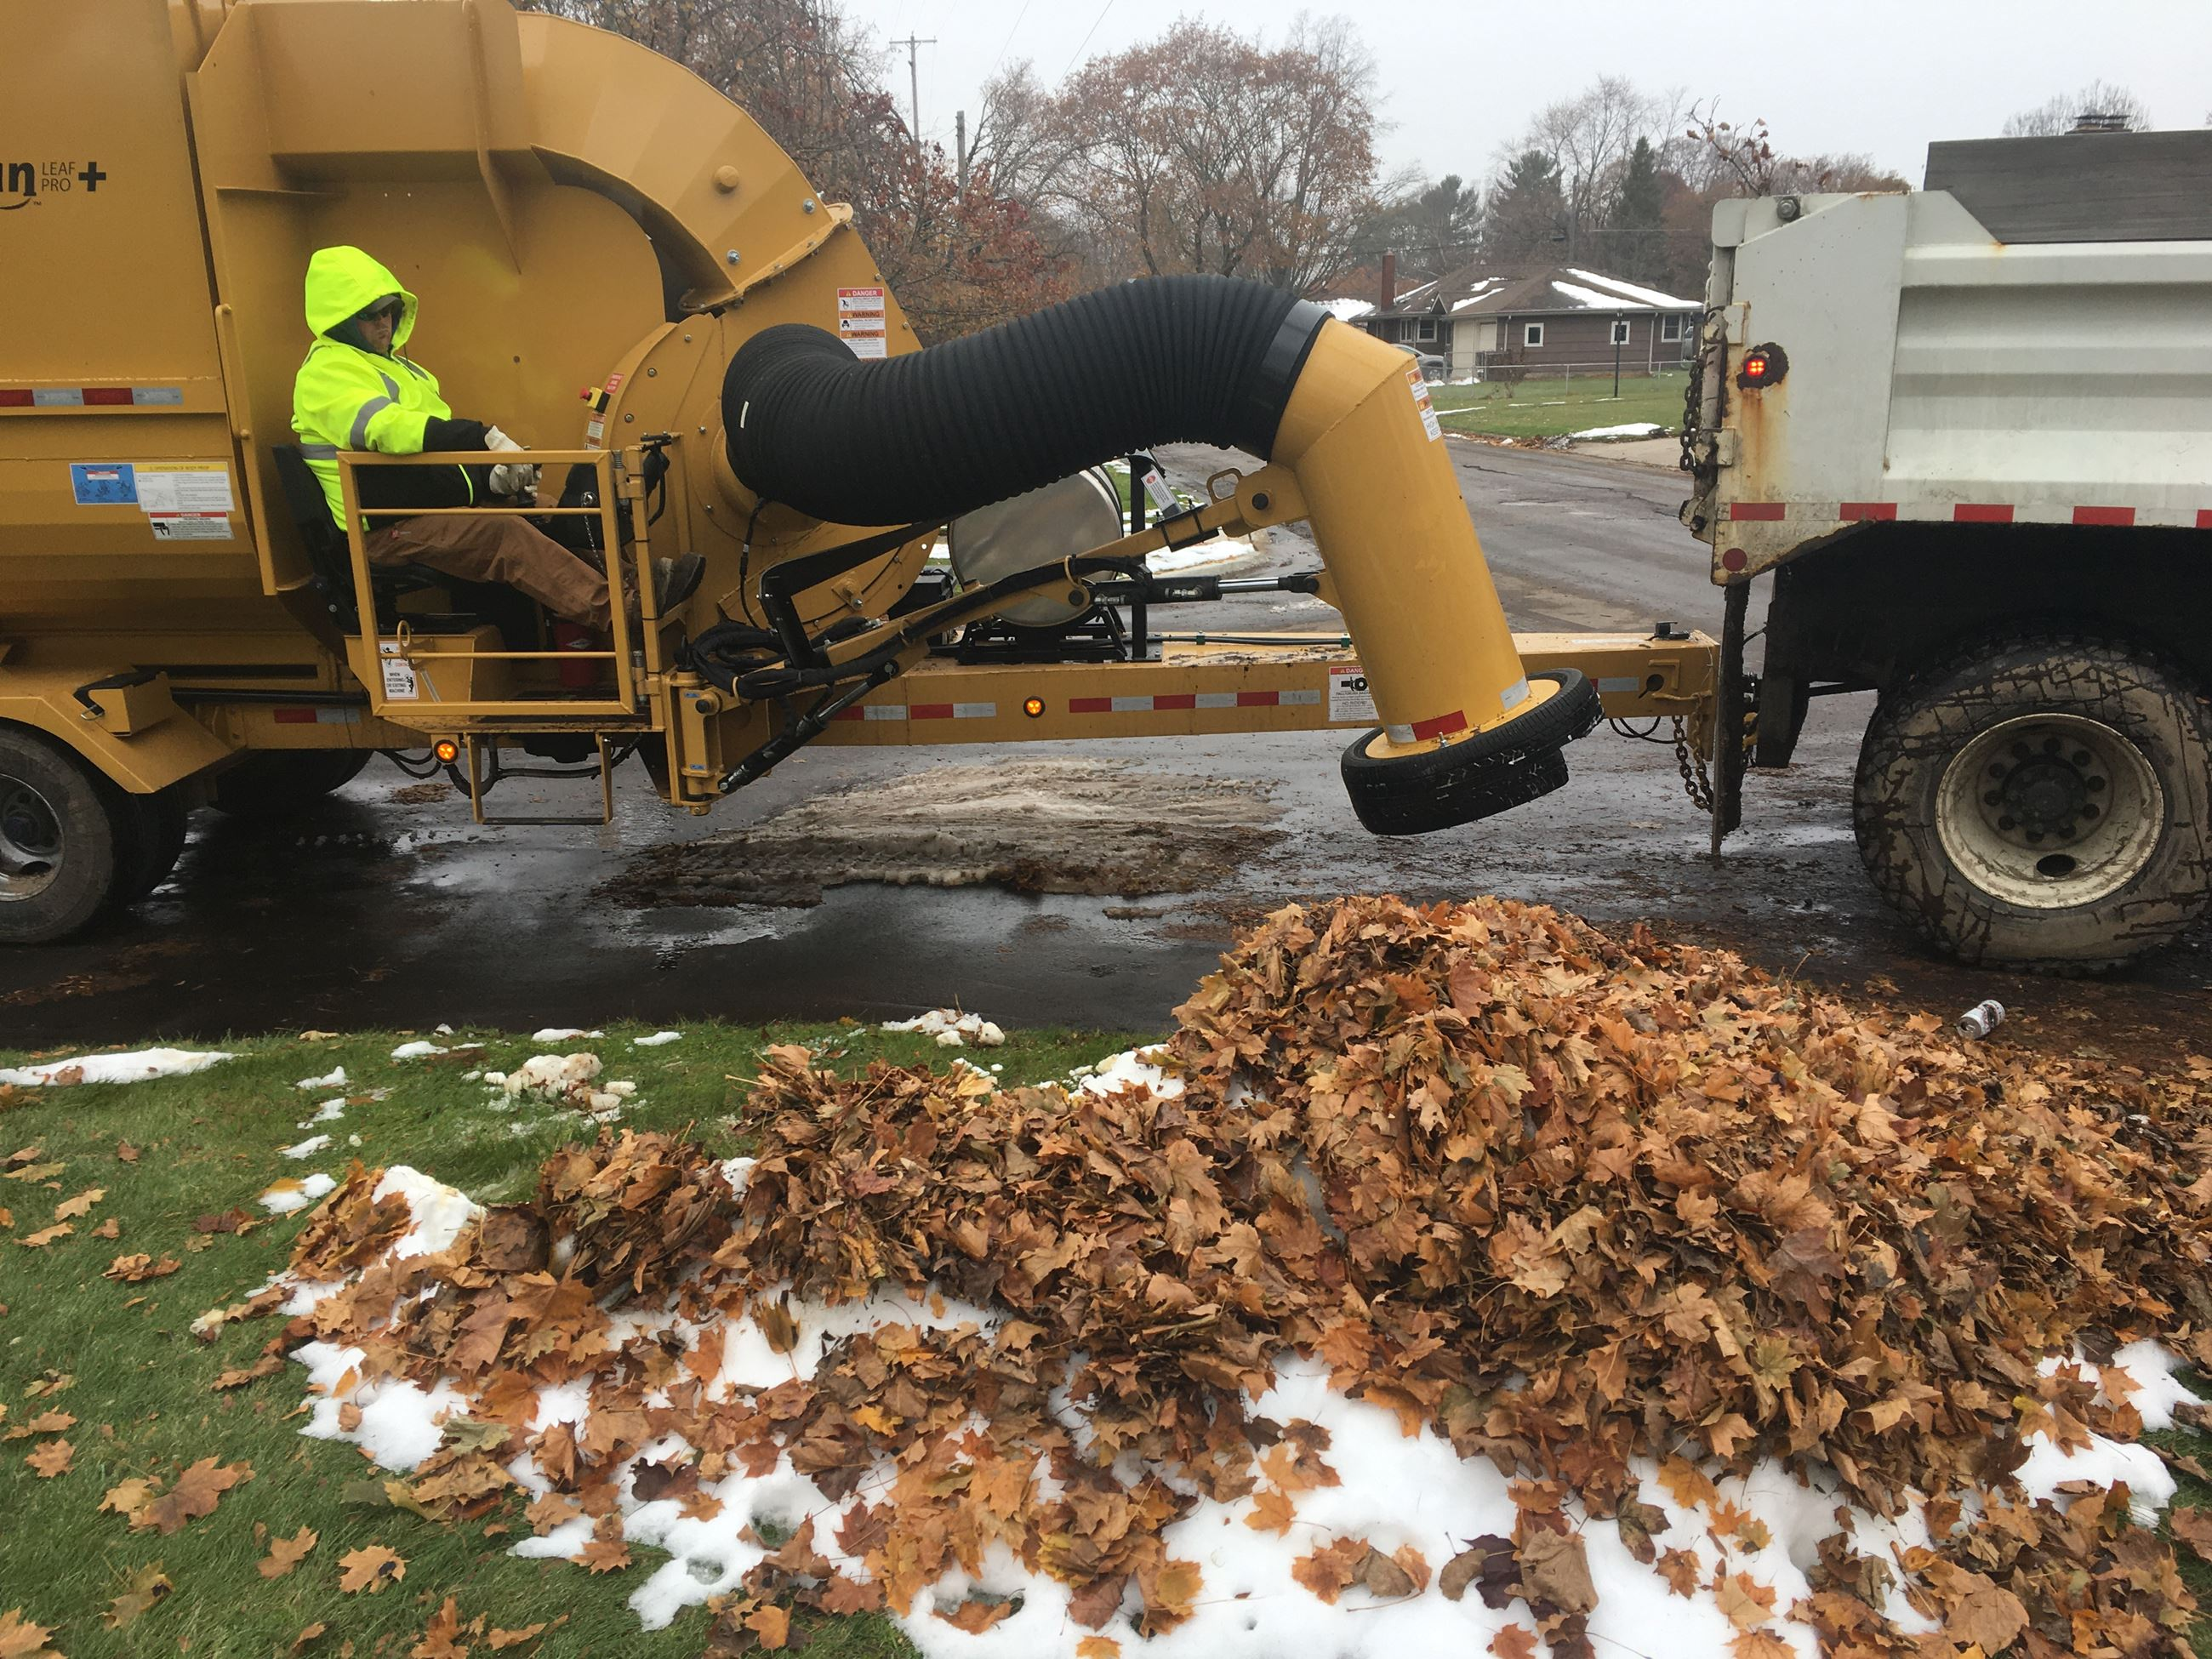 Leaf vacuum equipment gets ready to suck up a pile of leaves